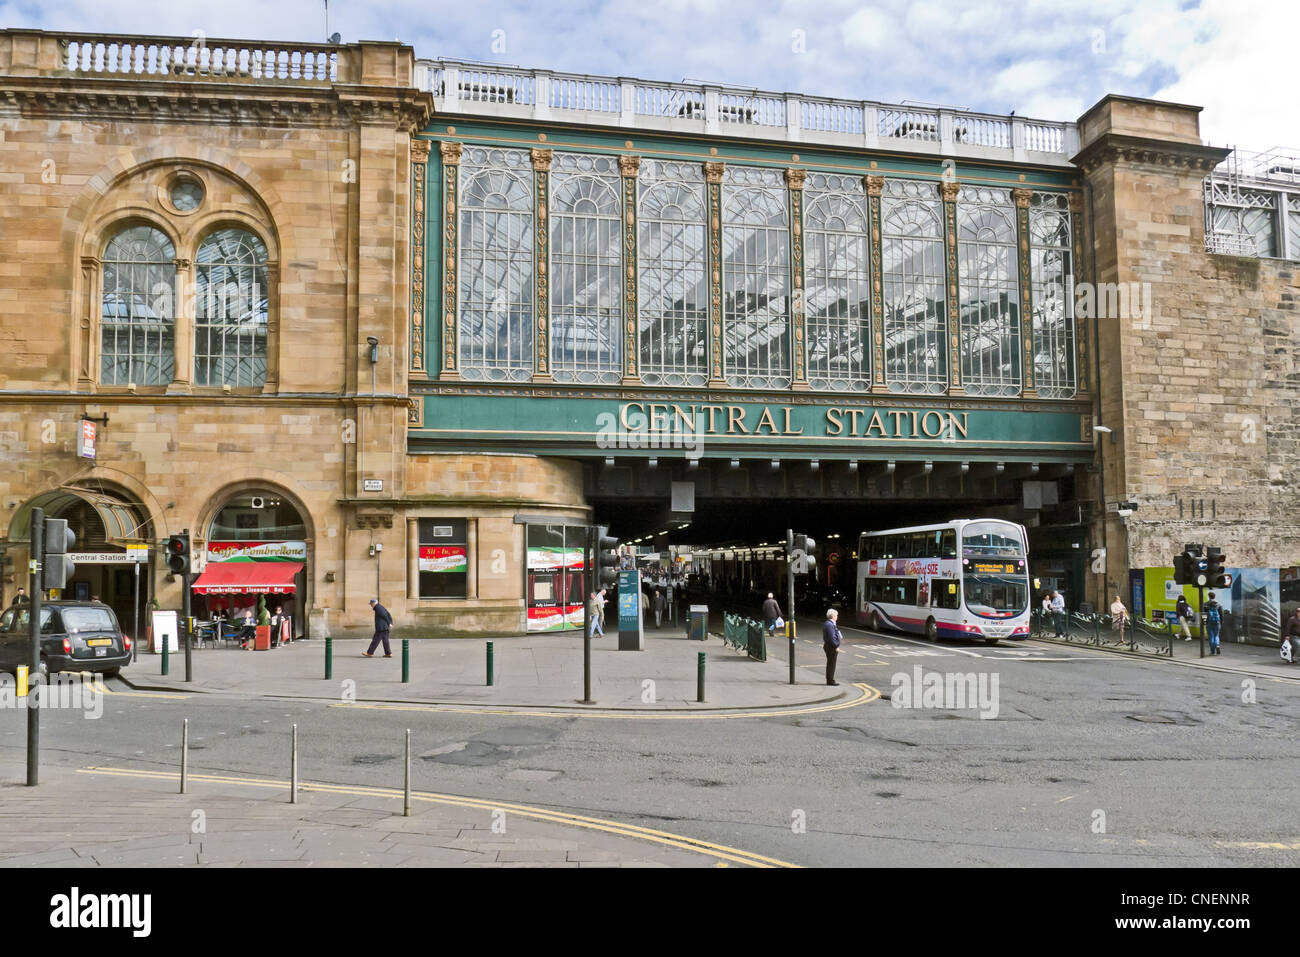 Glasgow Central railway Station spanning Argyle Street in Glasgow Scotland as seen from the west side of the station. - Stock Image